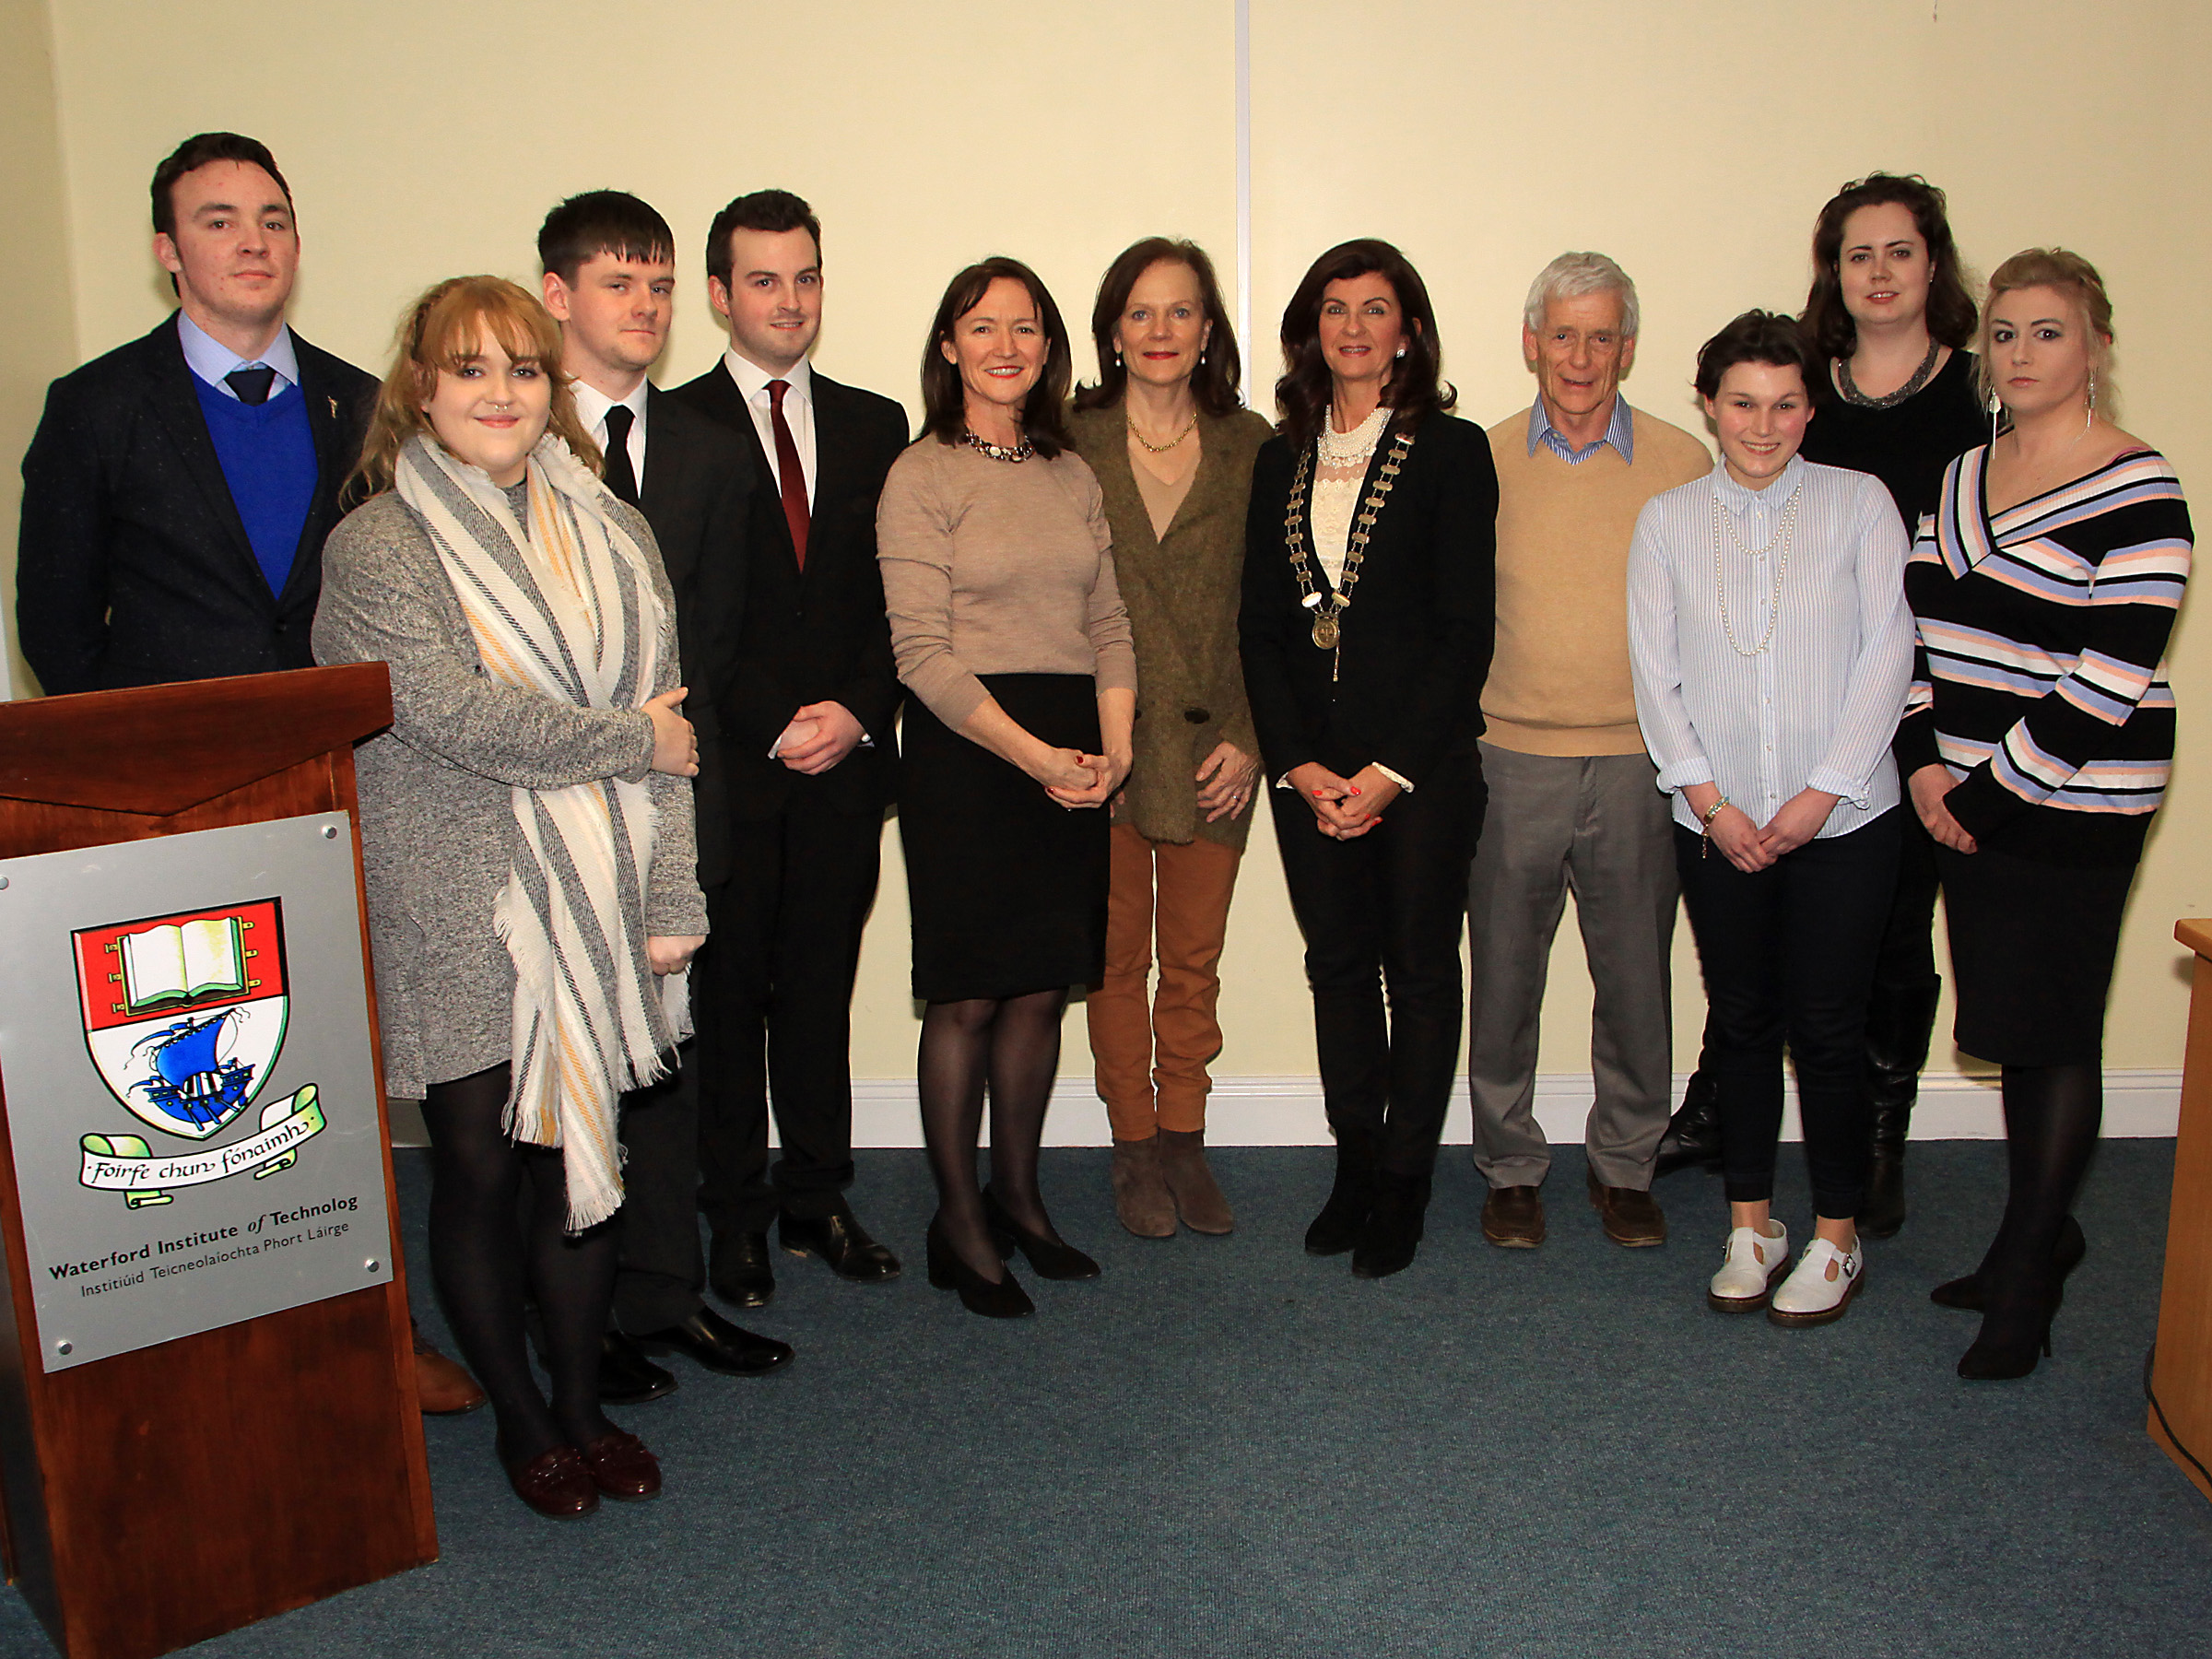 Pictured from left are Brandon Power, Sarah O Neill, Colm Kelly-Ryan, Sean Murphy, Deirdre Adams Law lecturer, Liz Dowling Soliicitor,  Edel Morrissey president of the Waterford Law Society, Walter O Leary Law Lecturer, Saoirse Fleming, Jennifer Kavanagh Law Lecturer, Kelly Thomas (Winner)